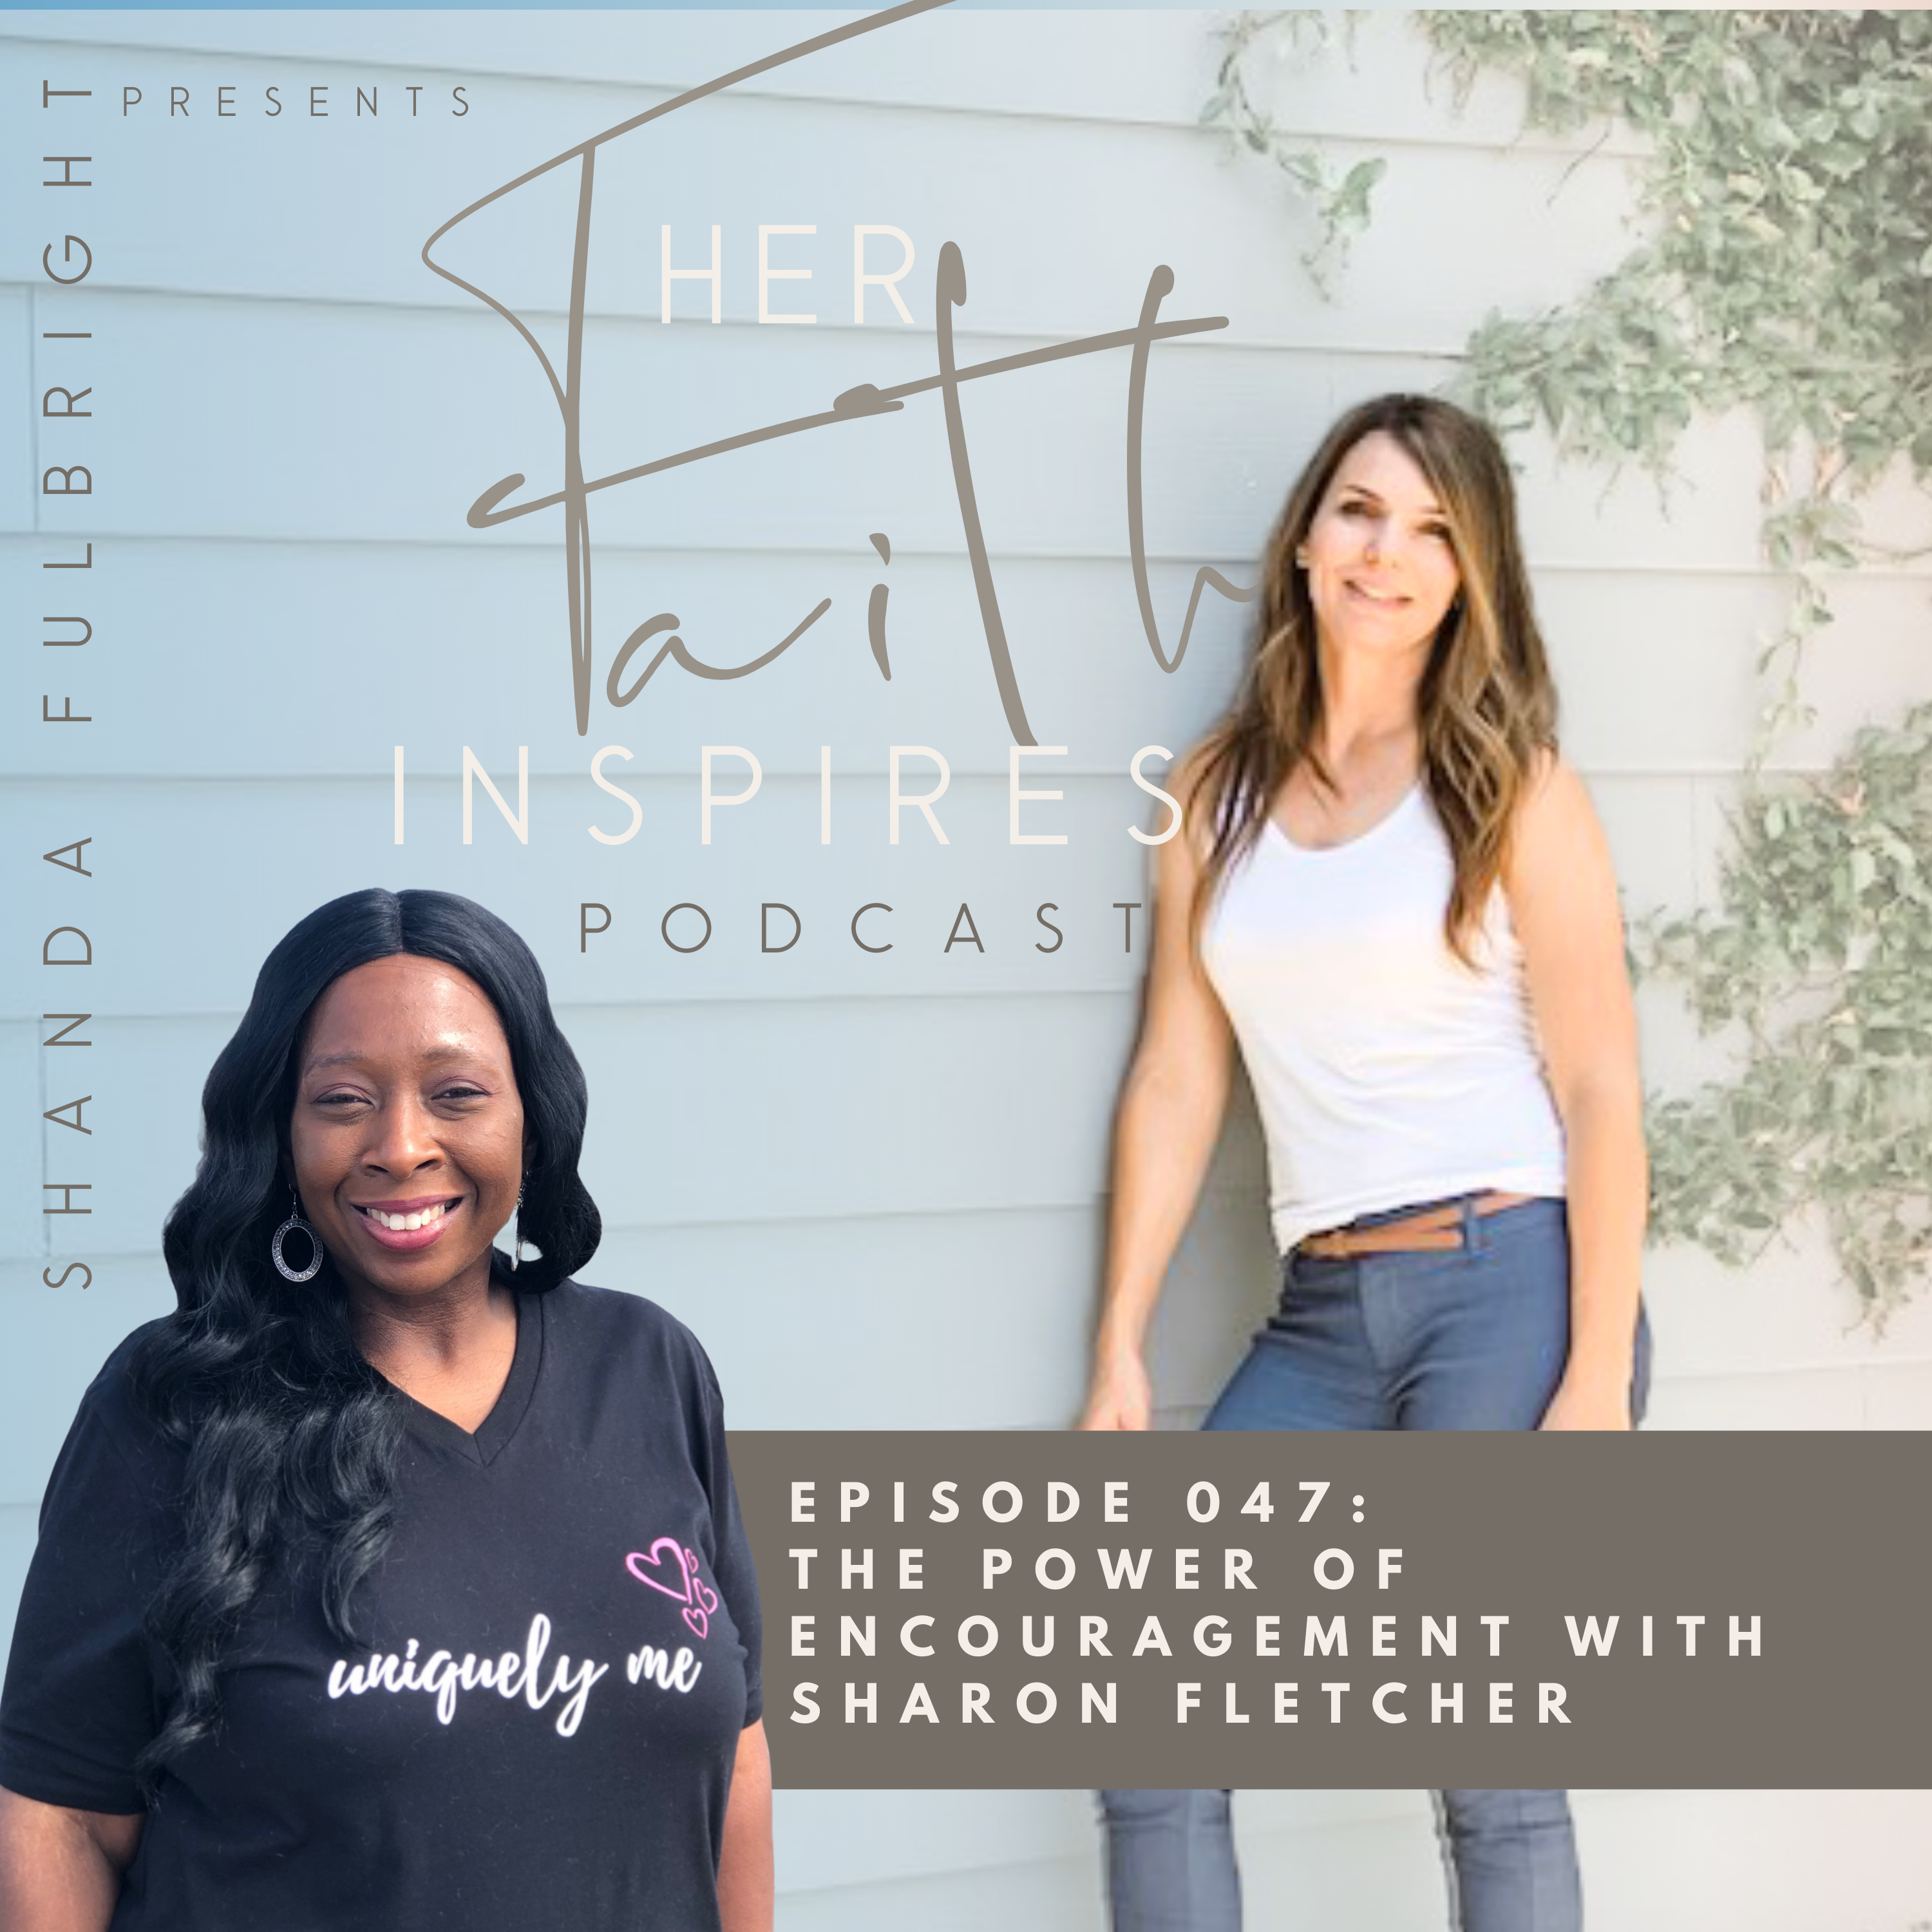 SF Podcast Episode 47 - HER FAITH INSPIRES 47 : The power of encouragement